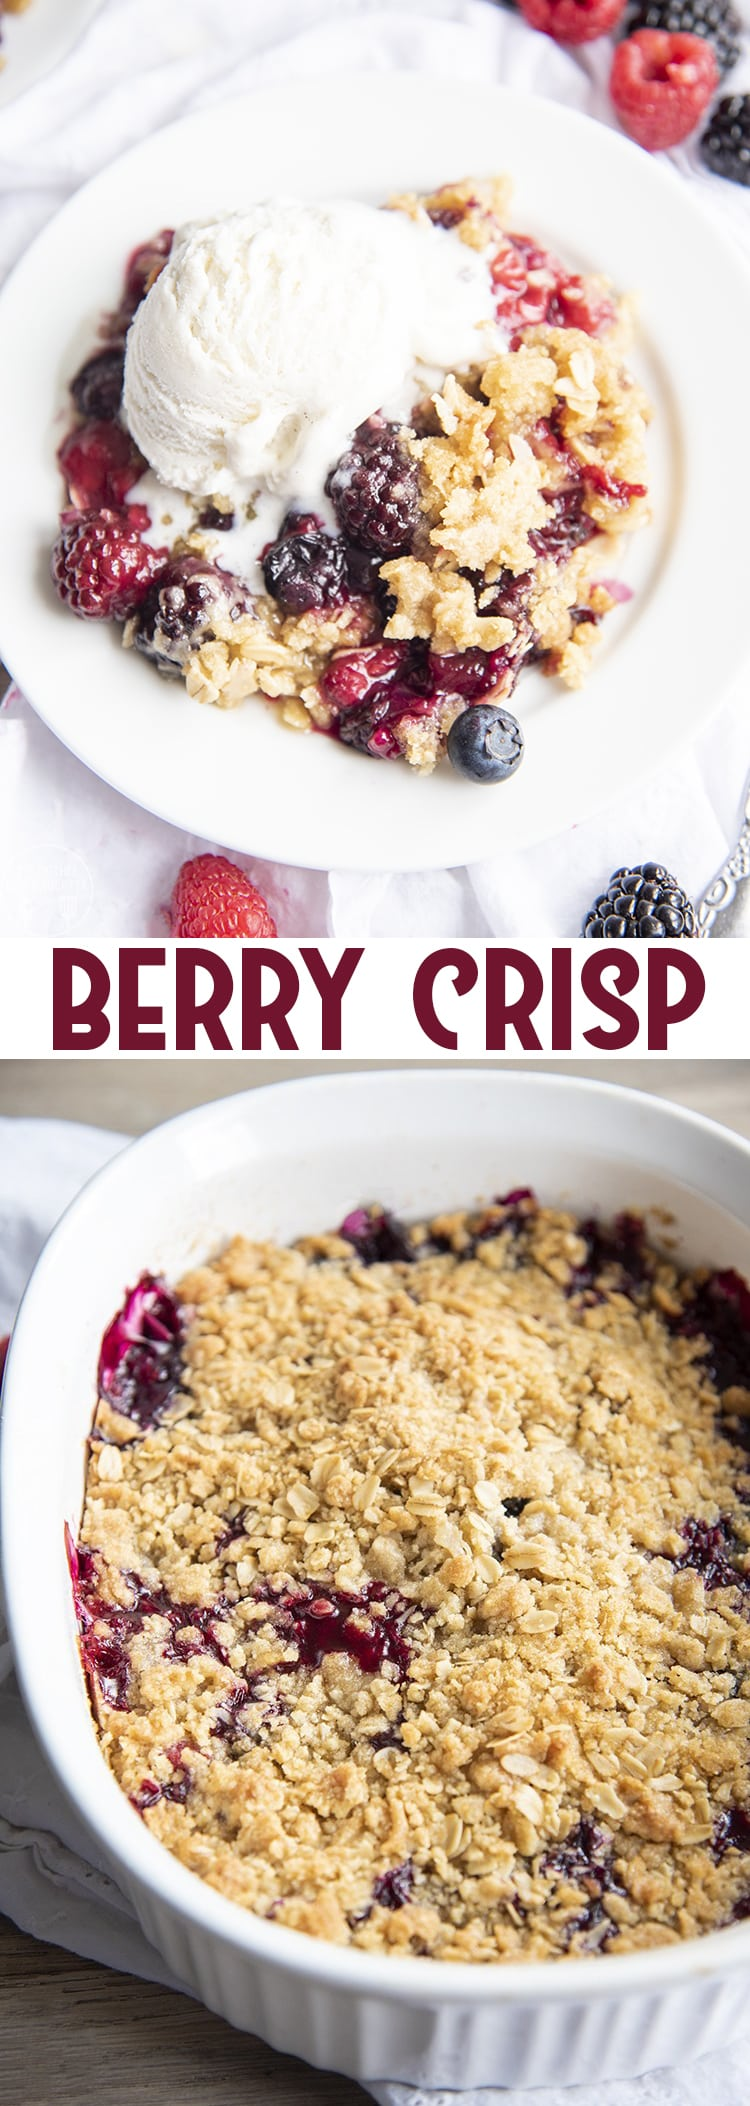 This berry crisp is the perfect summer dessert, with a fresh triple berry base topped with the best crunchy oat crumble topping. It's the best served warm with a big scoop of ice cream!